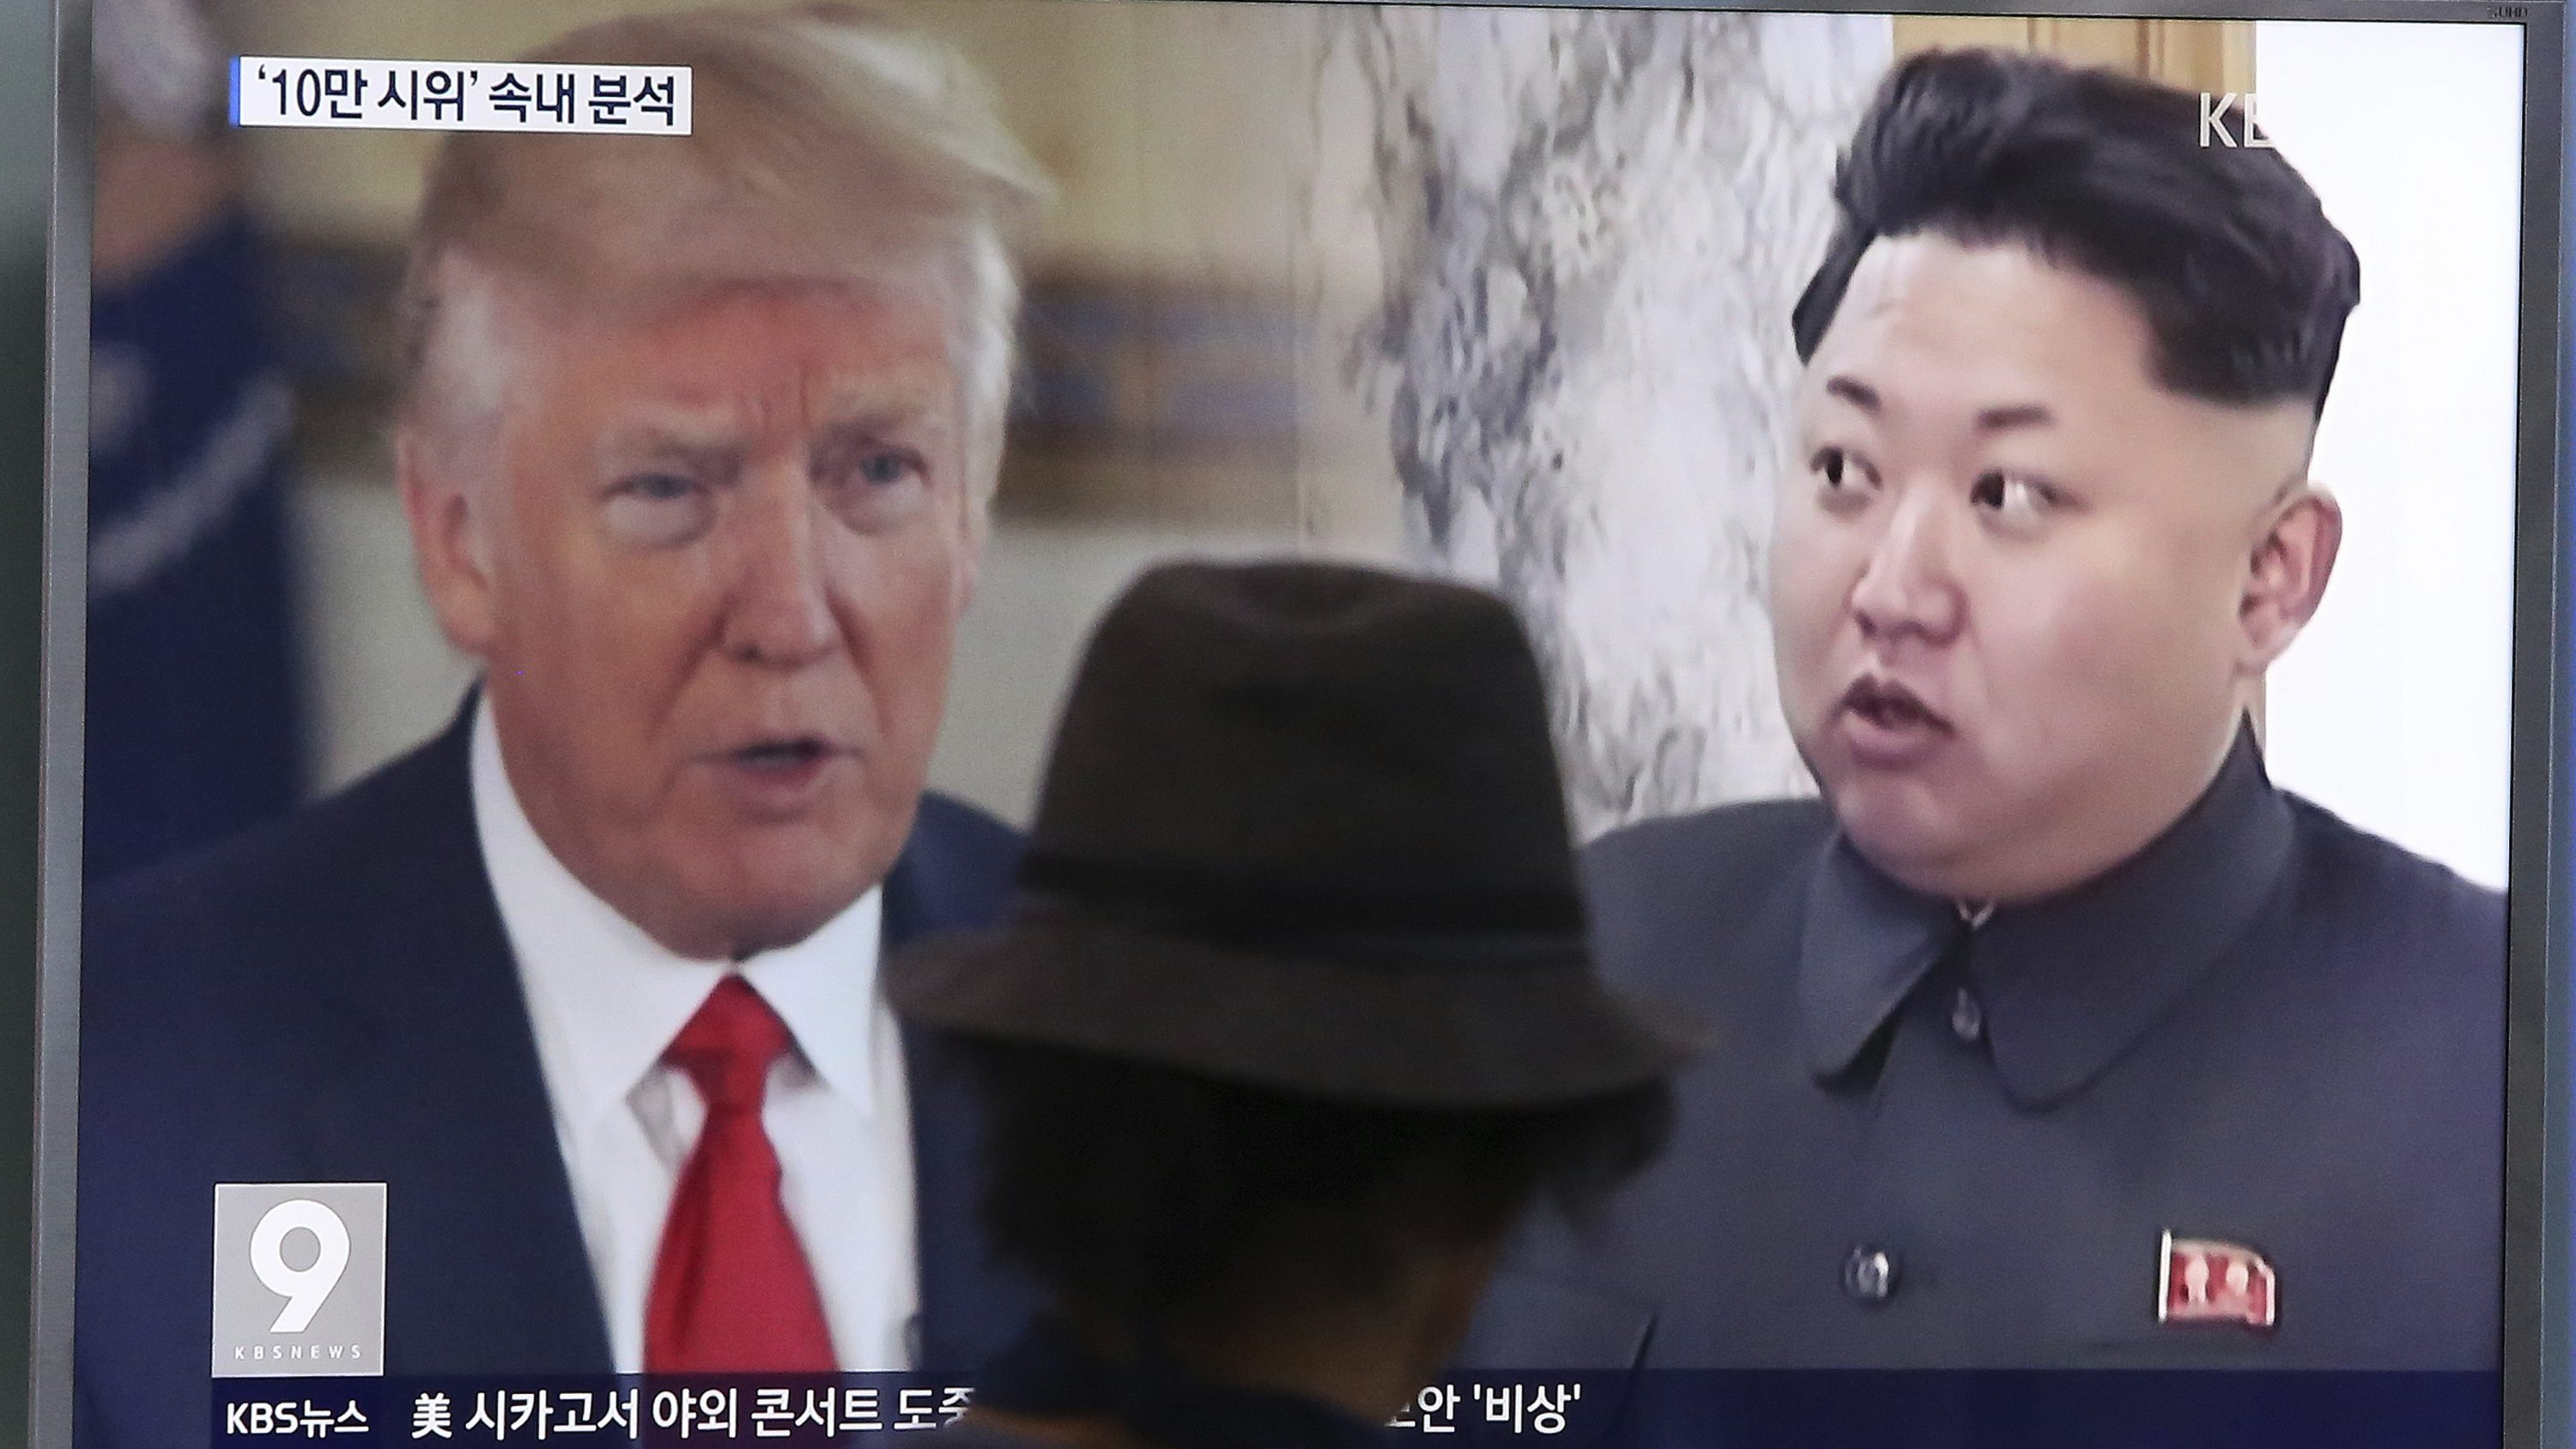 In this Thursday, Aug. 10, 2017, file photo, a man watches a television screen showing U.S. President Donald Trump, left, and North Korean leader Kim Jong Un during a news program at the Seoul Train Station in Seoul, South Korea. North Korea has announced a detailed plan to launch a salvo of ballistic missiles toward the U.S. Pacific territory of Guam, a major military hub and home to U.S. bombers. If carried out, it would be the North's most provocative missile launch to date.